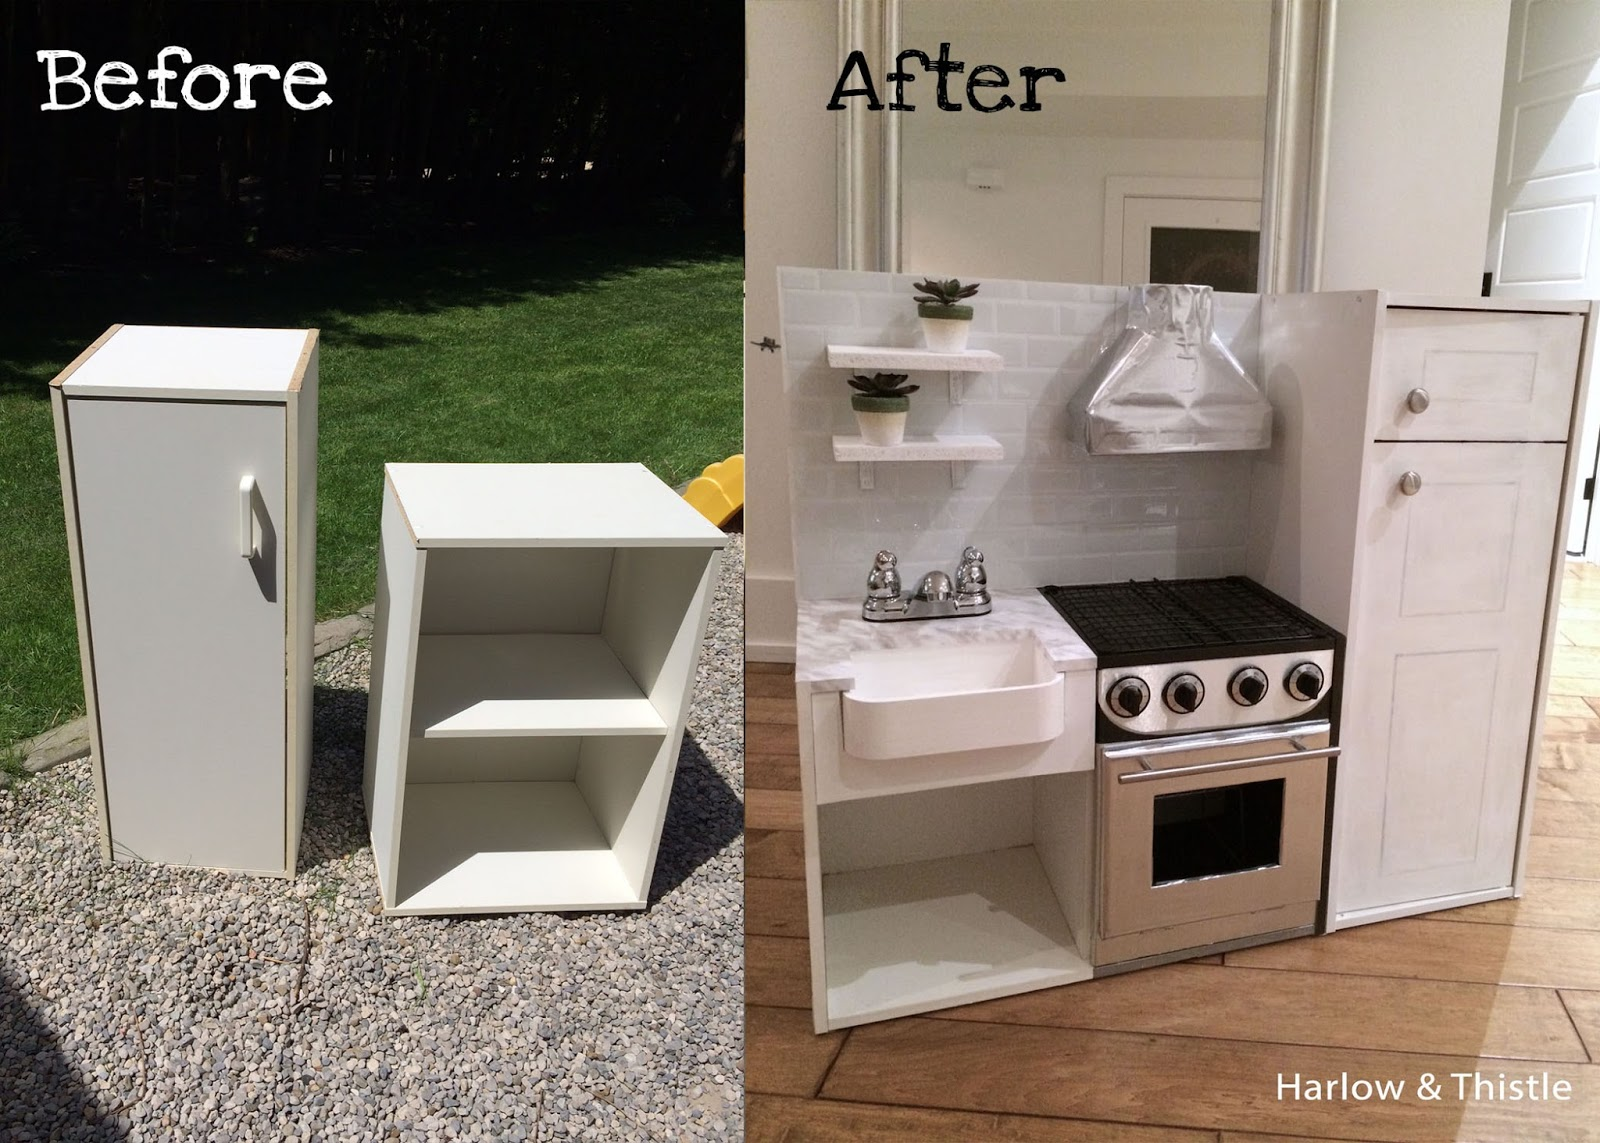 DIY Play Kitchen | Harlow & Thistle - Home Design - Lifestyle - DIY